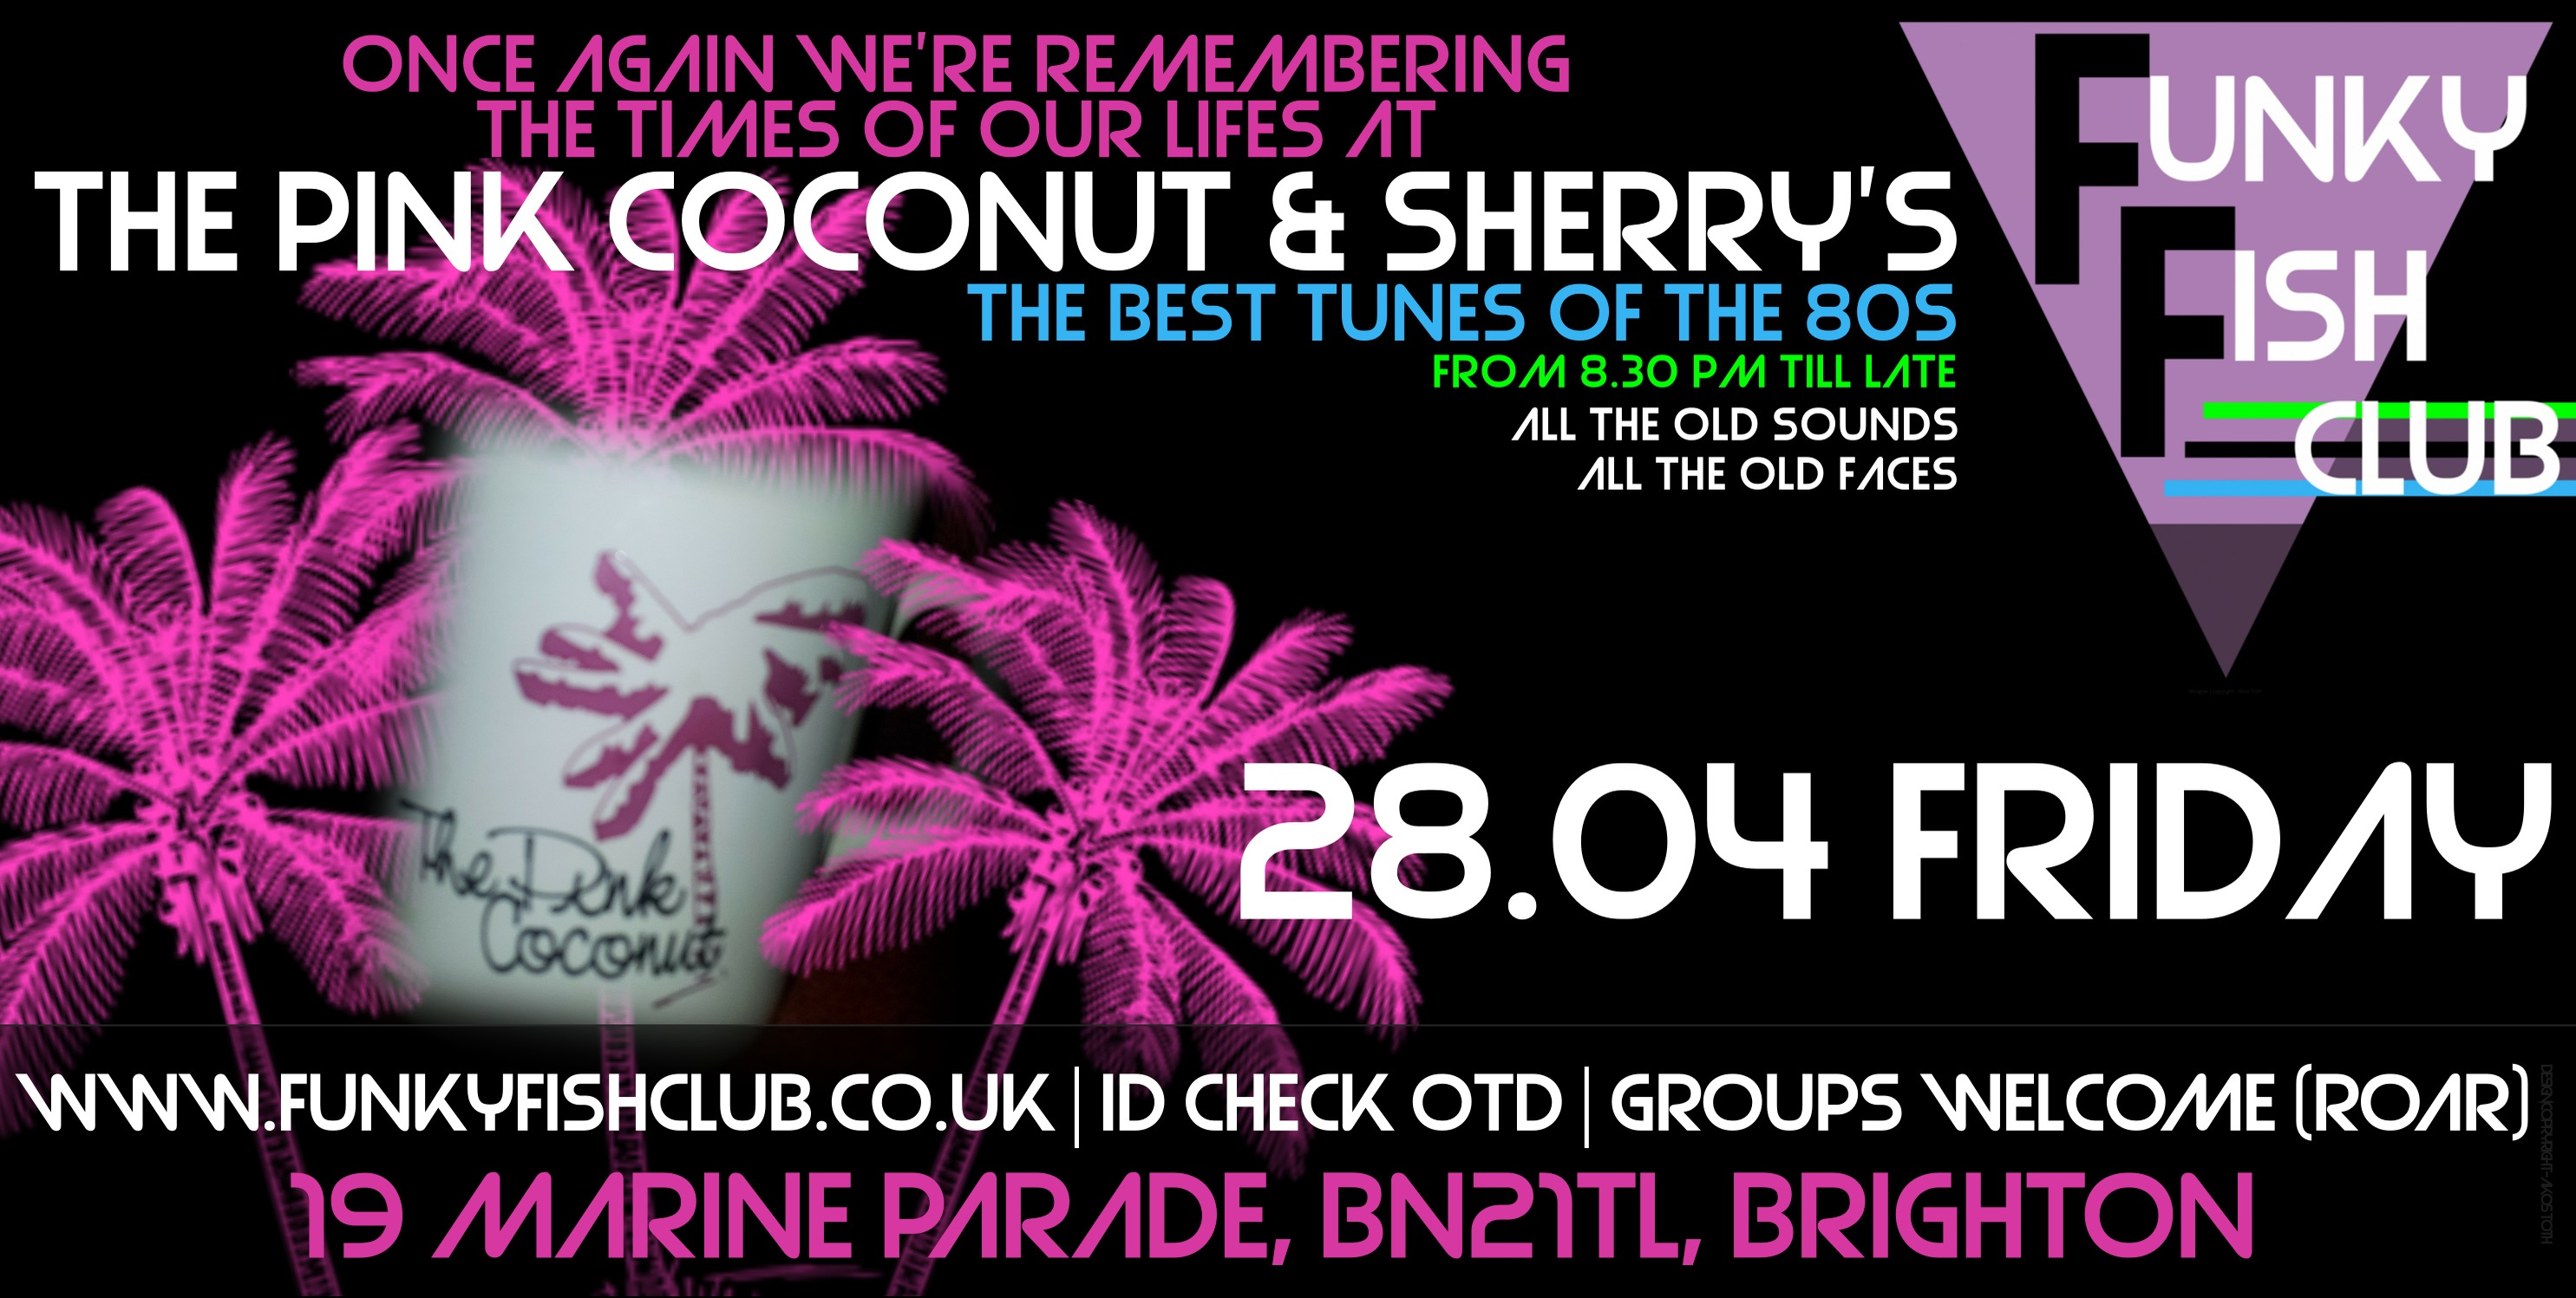 PINK COCONUT & SHERRY'S REVIVAL NIGHT